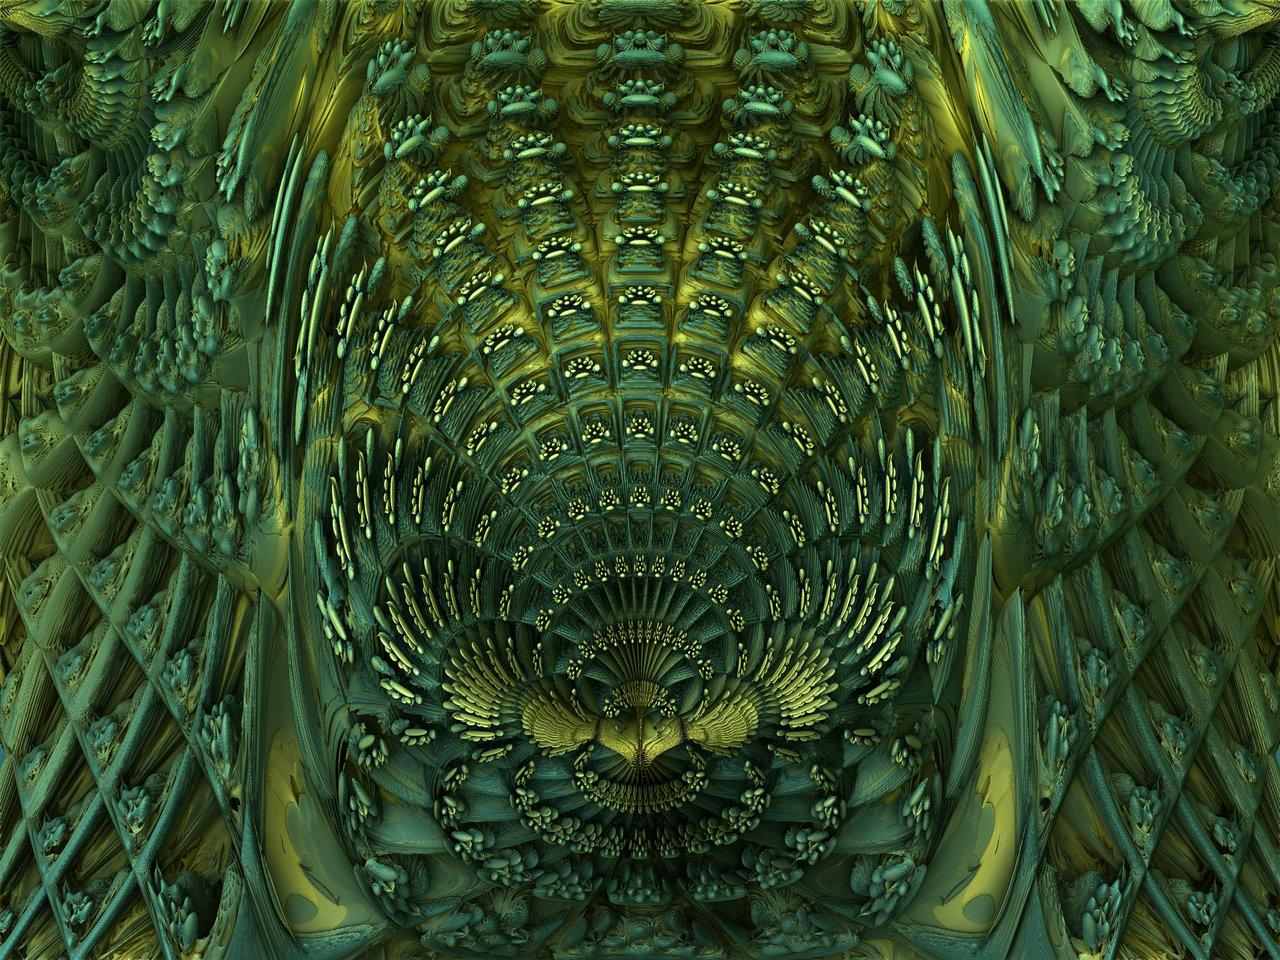 Persistent Aura Fractal Art - Page 2 - Visual Promotion - Psynews.org - Page 2